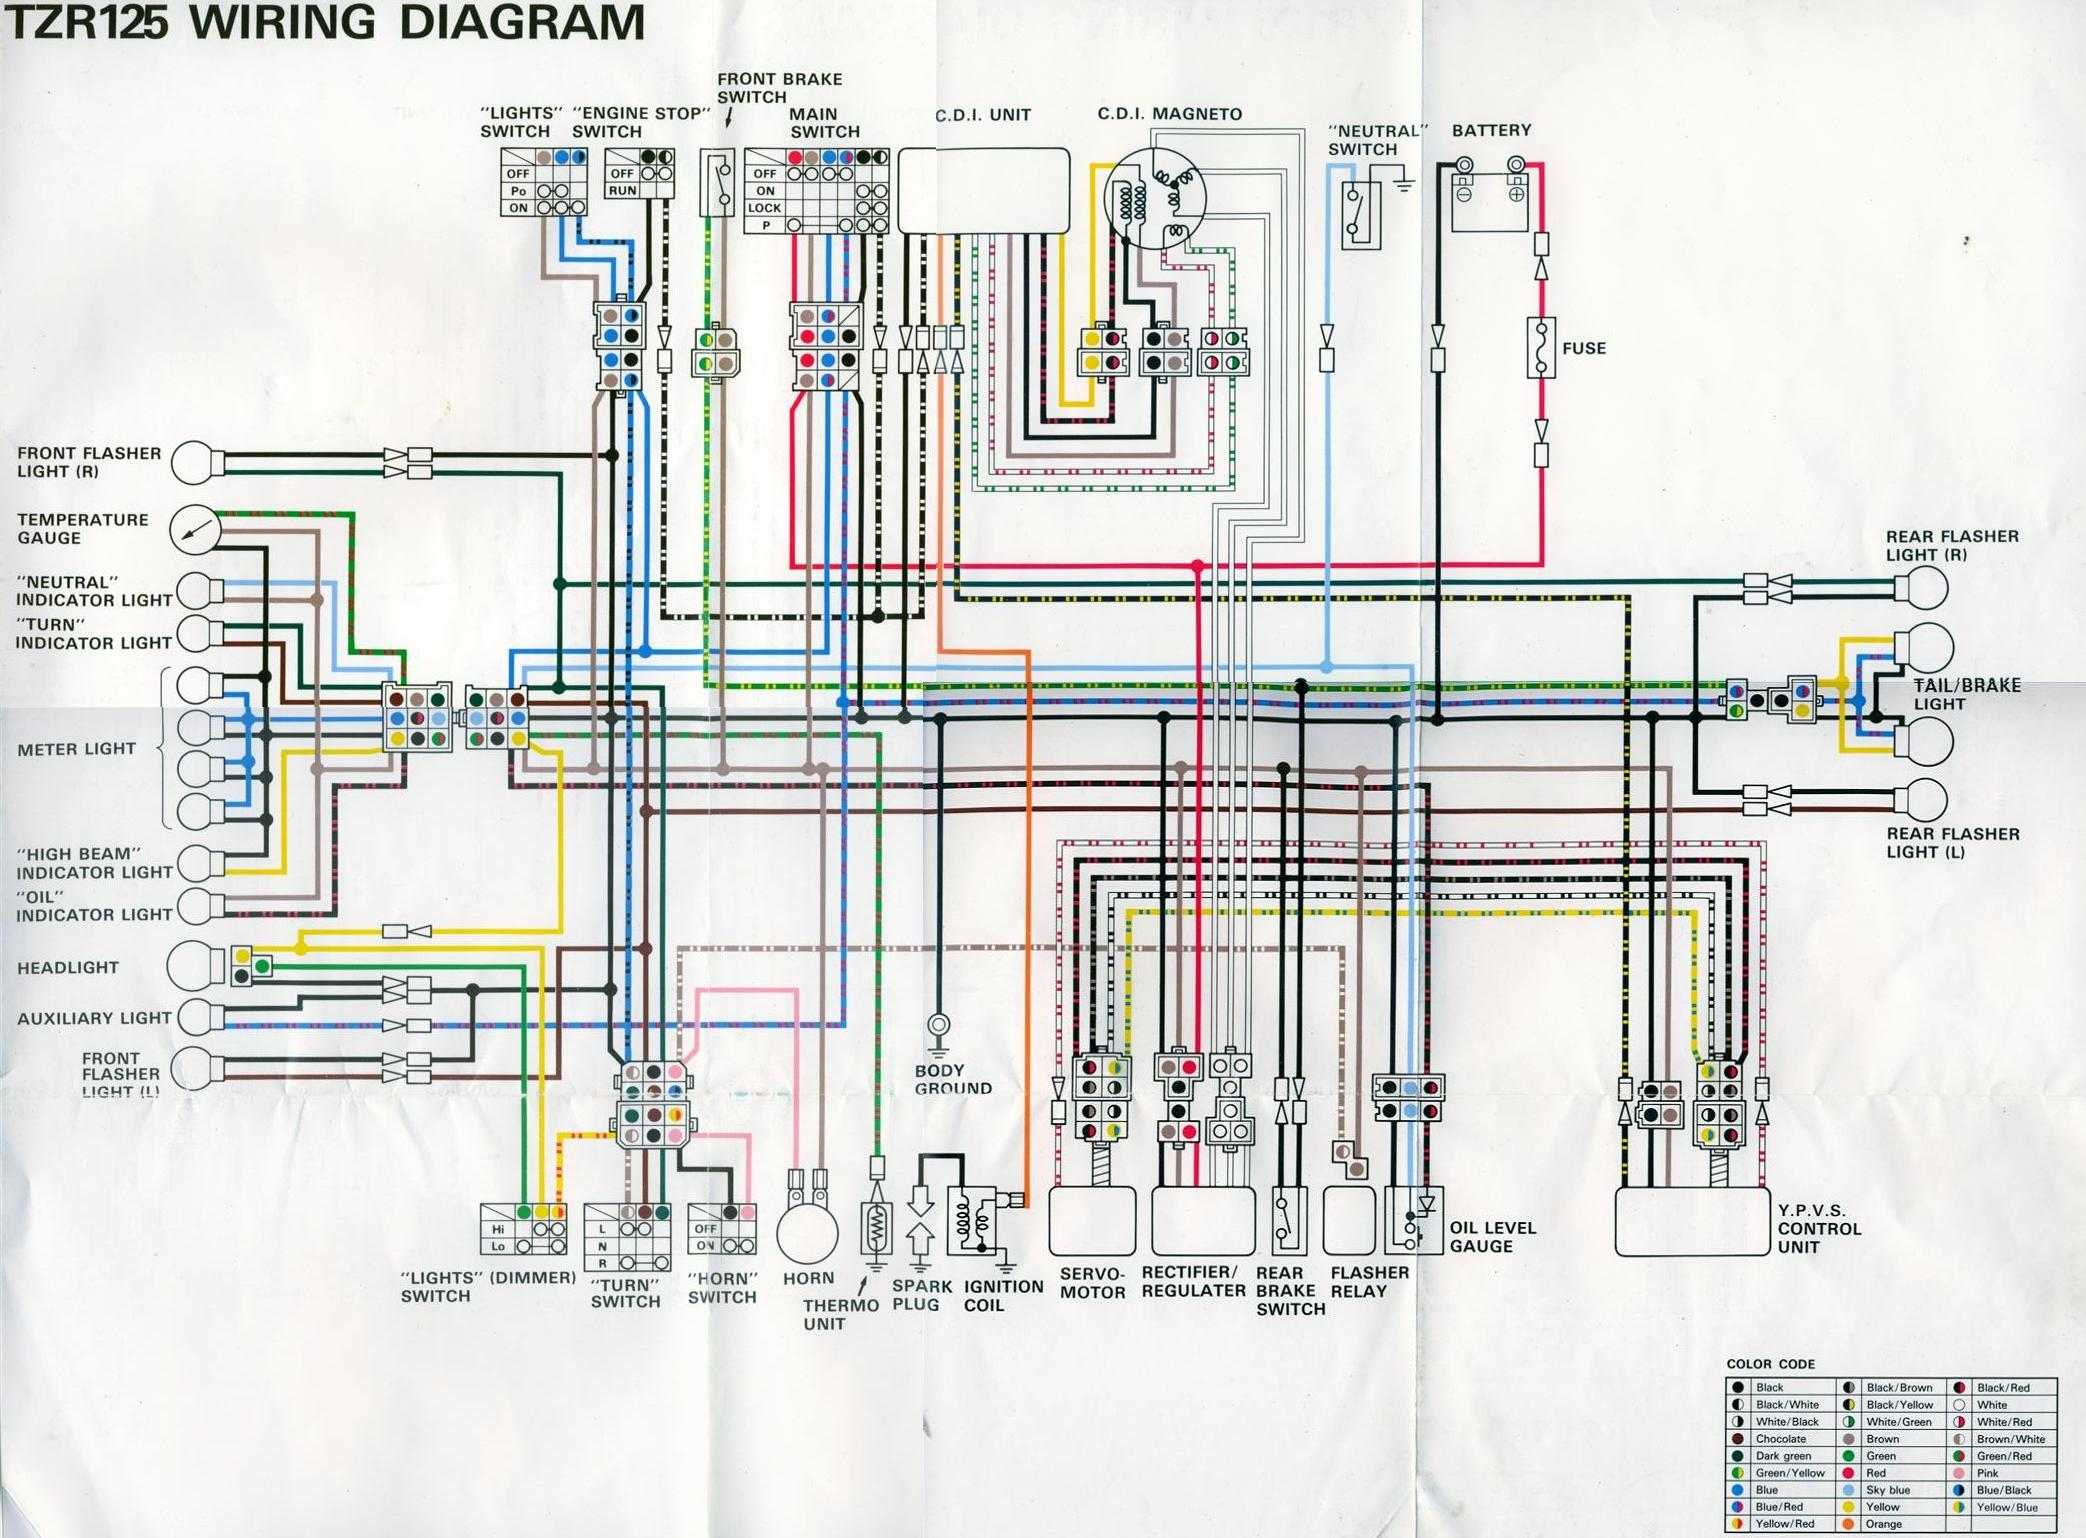 125cc Chinese Atv Wiring Diagram Diagrams Taotao 110cc 50cc Scooter Engine Electric Motorcycle Loncin 250 6 Wire